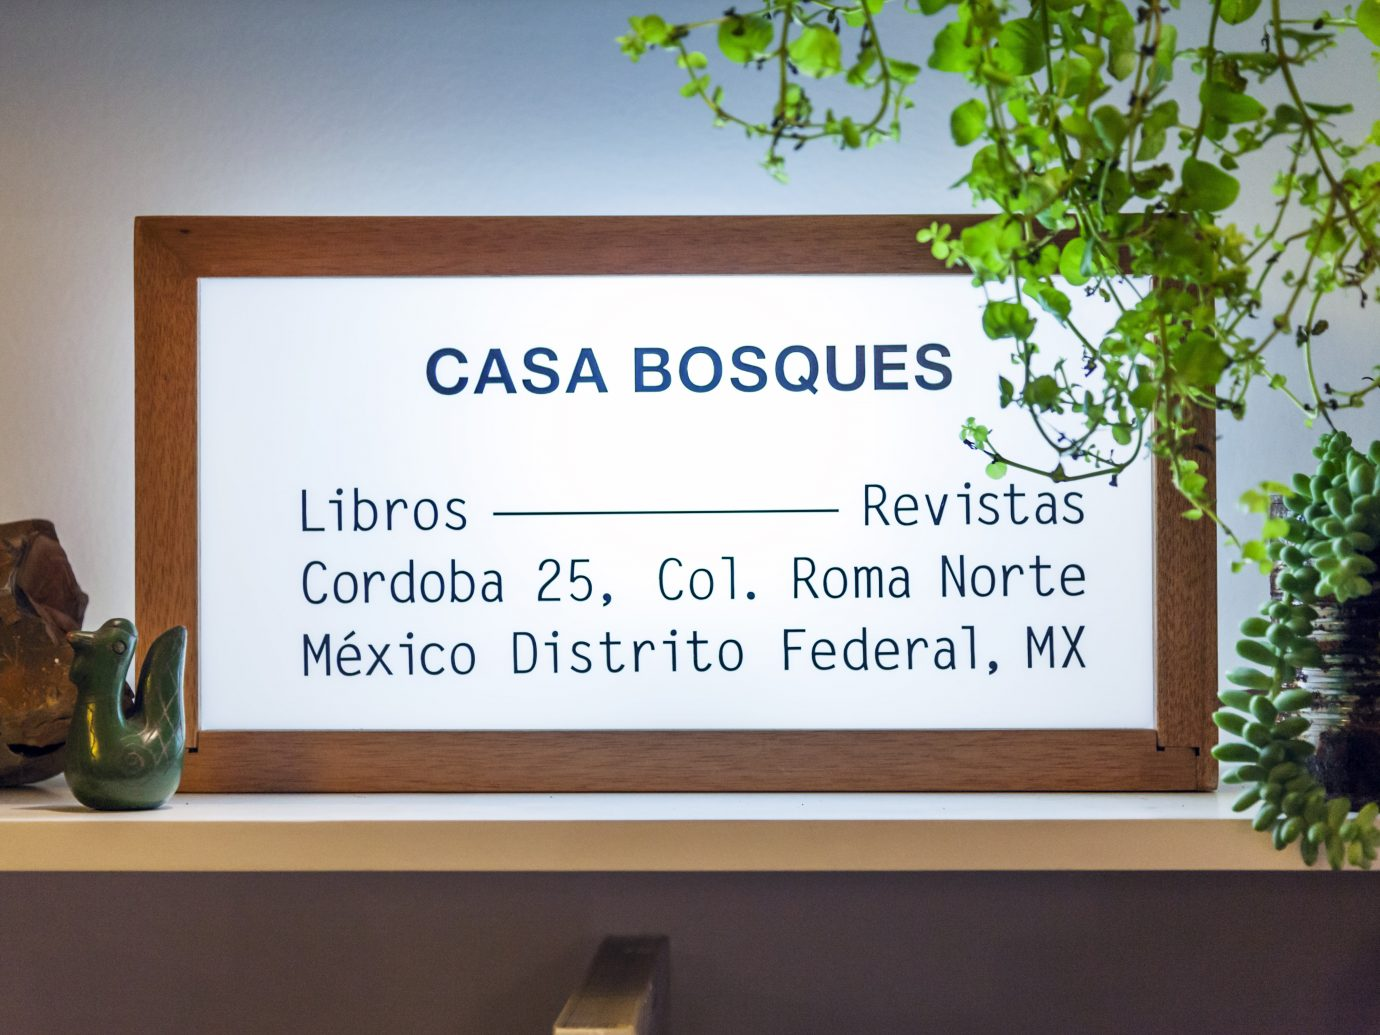 Florescent lit sign listing the location of Casa Bosques